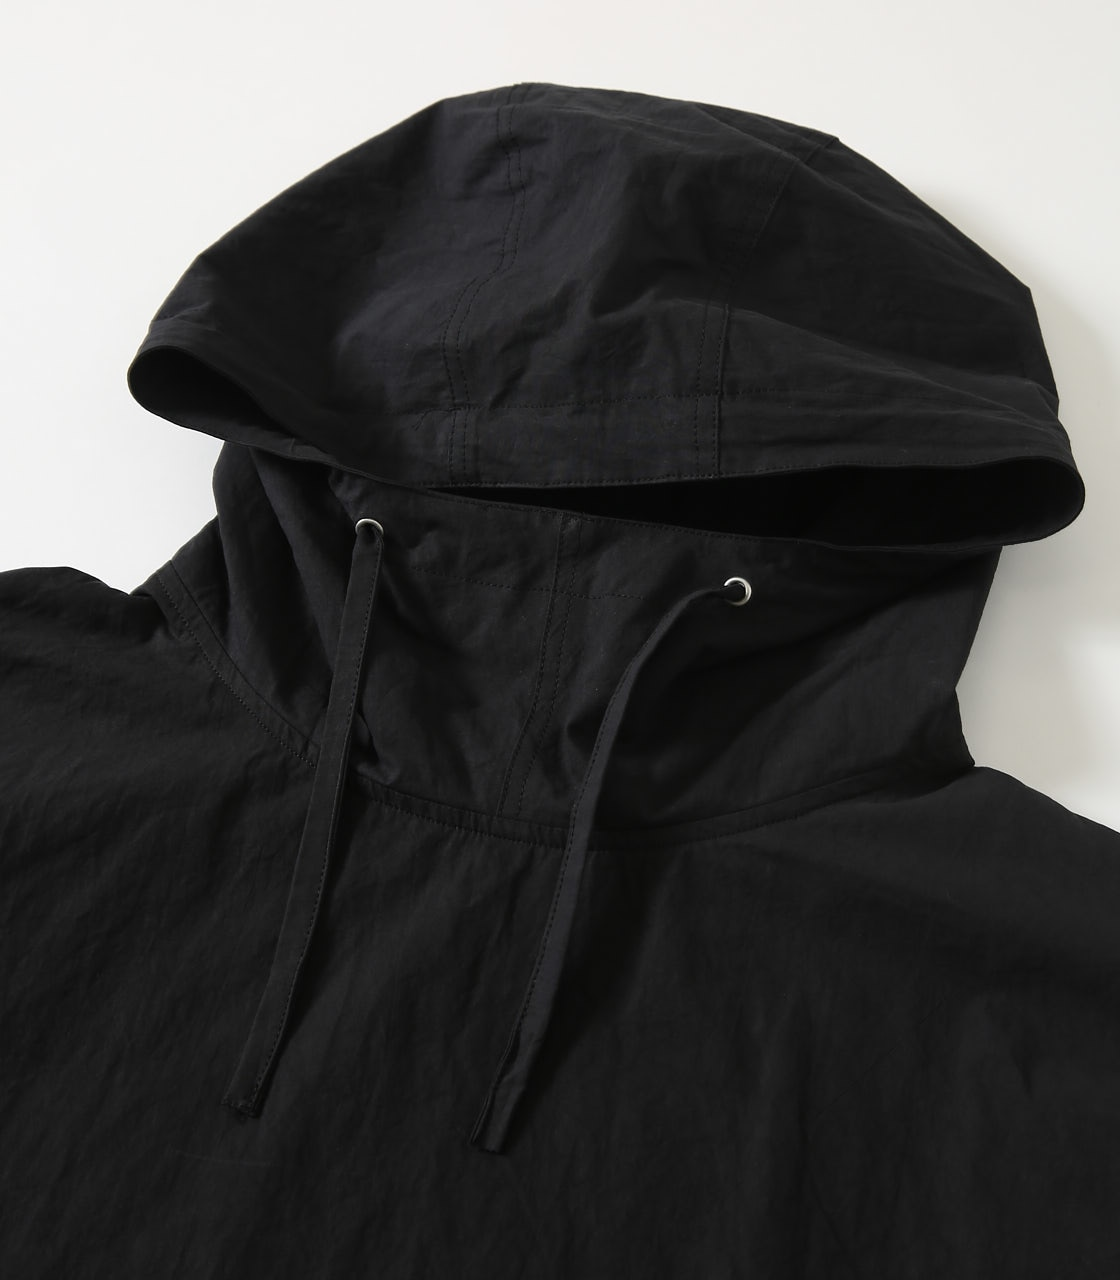 【AZUL BY MOUSSY】OVERSIZED COTTON ANORAK 詳細画像 BLK 3